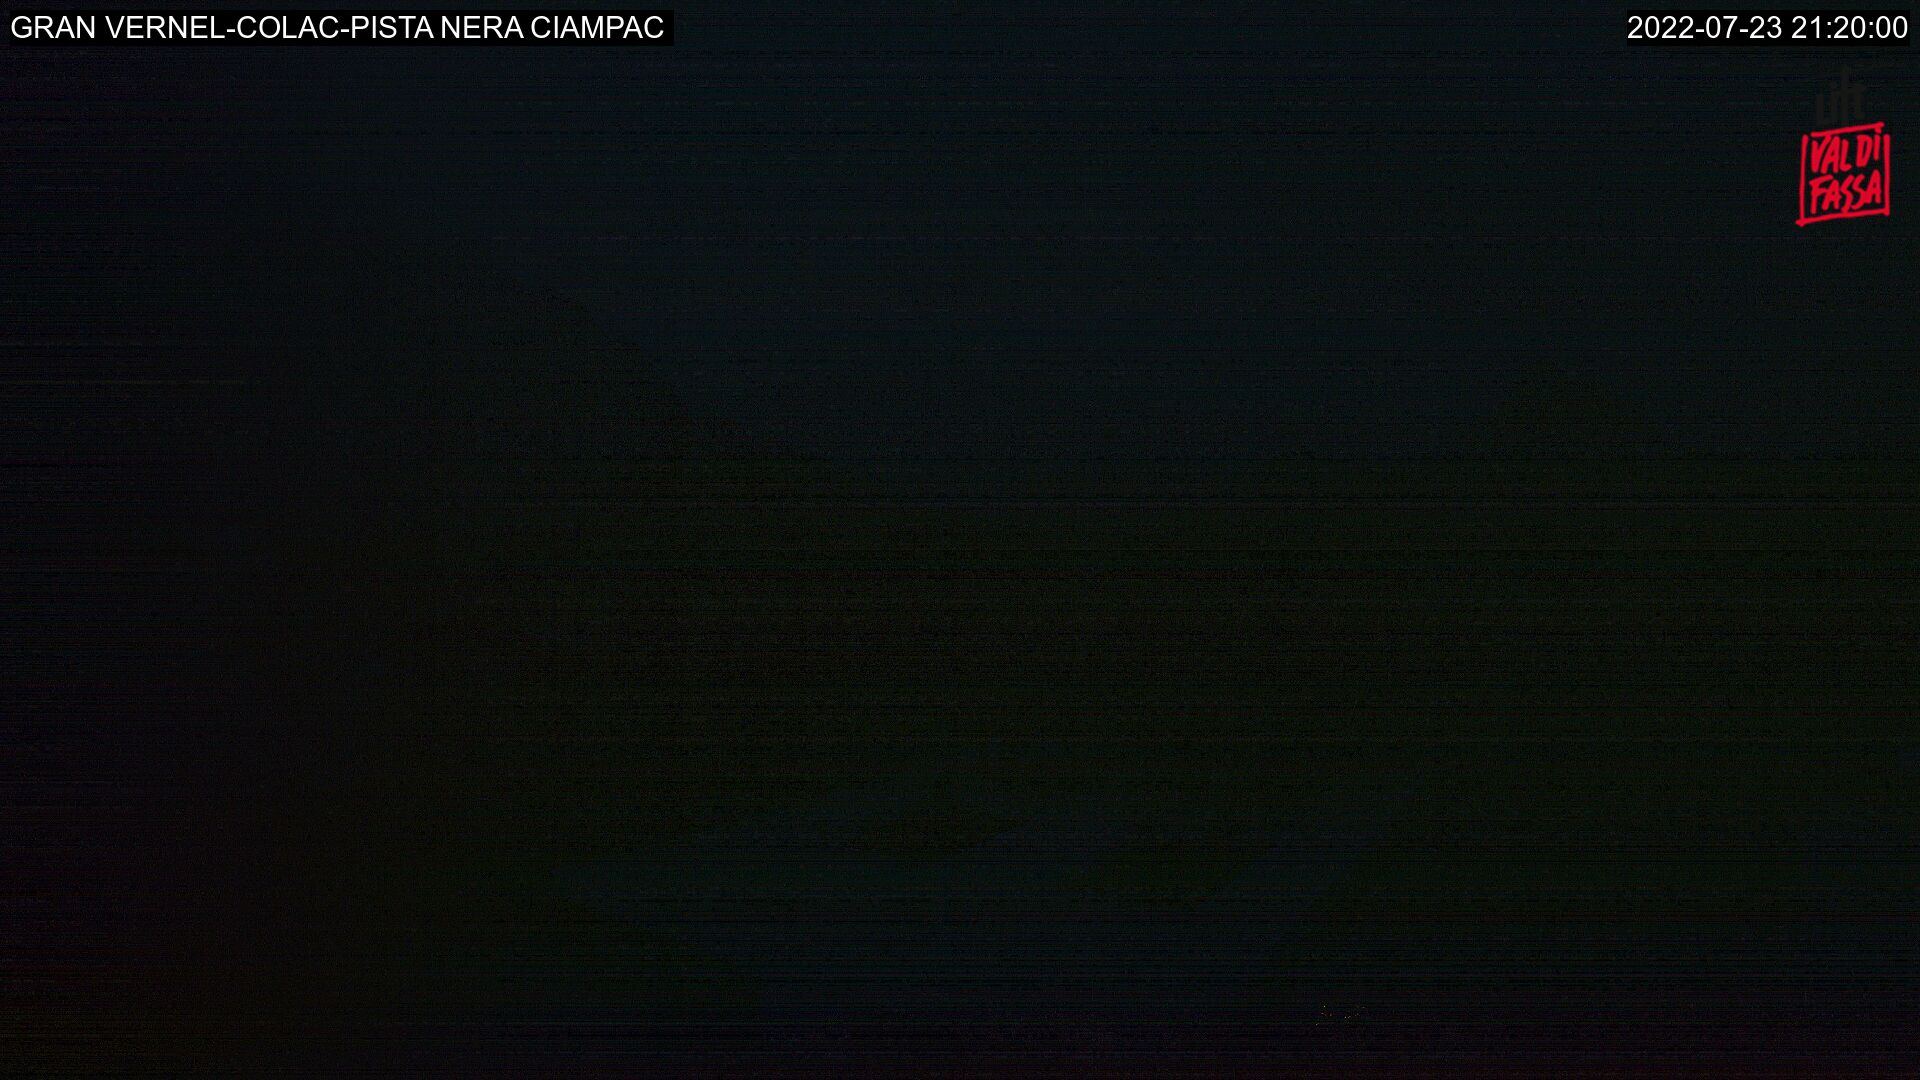 Webcam Alba di Canazei - Ciampac - Altitude: 2,376 metresArea: Col dei Rossi Panoramic viewpoint: static webcam. View from the top station of the